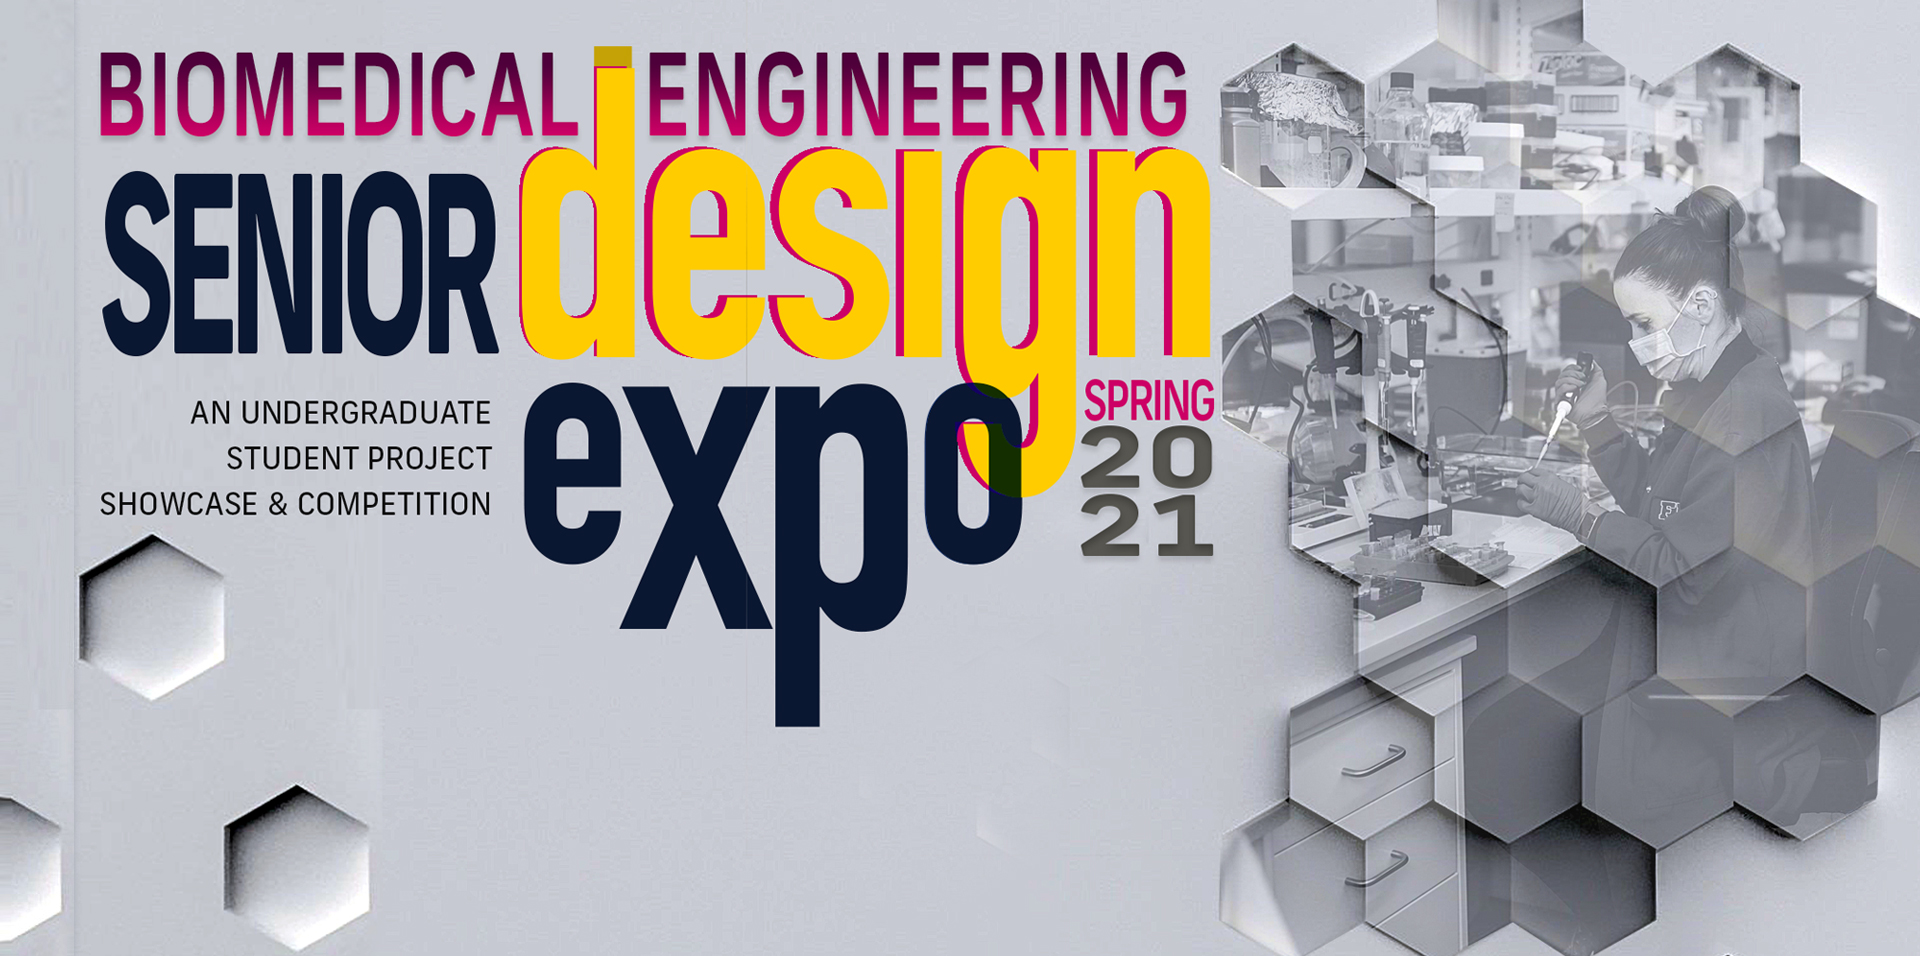 BME Senior Design Expo Spring 2021